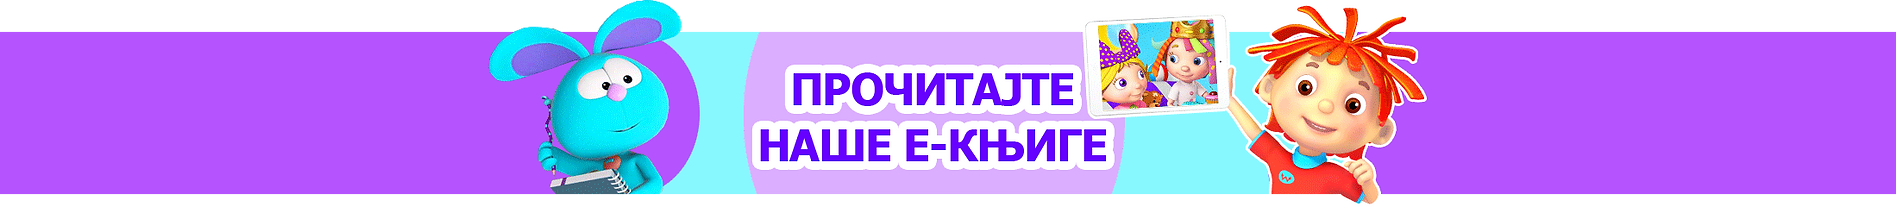 Serbian---Read-Our-eBooks---Banner.png